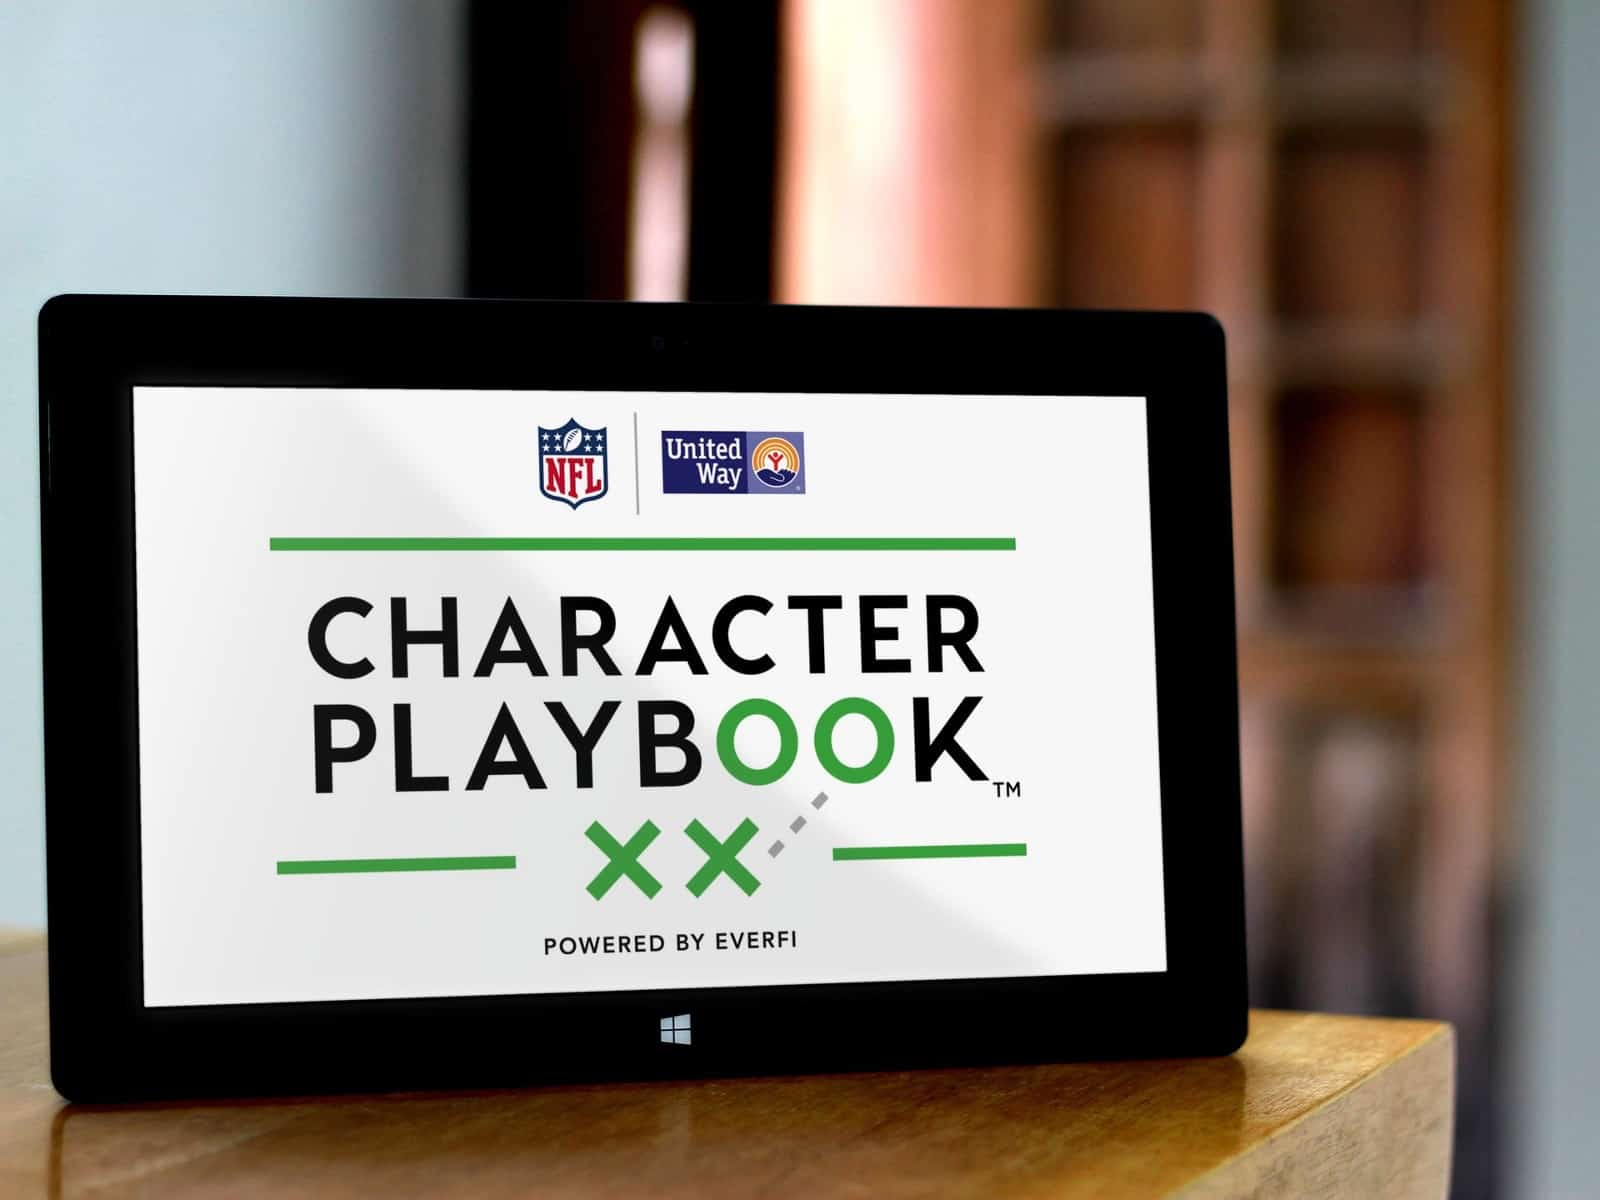 CharacterPlaybookTablet-squashed